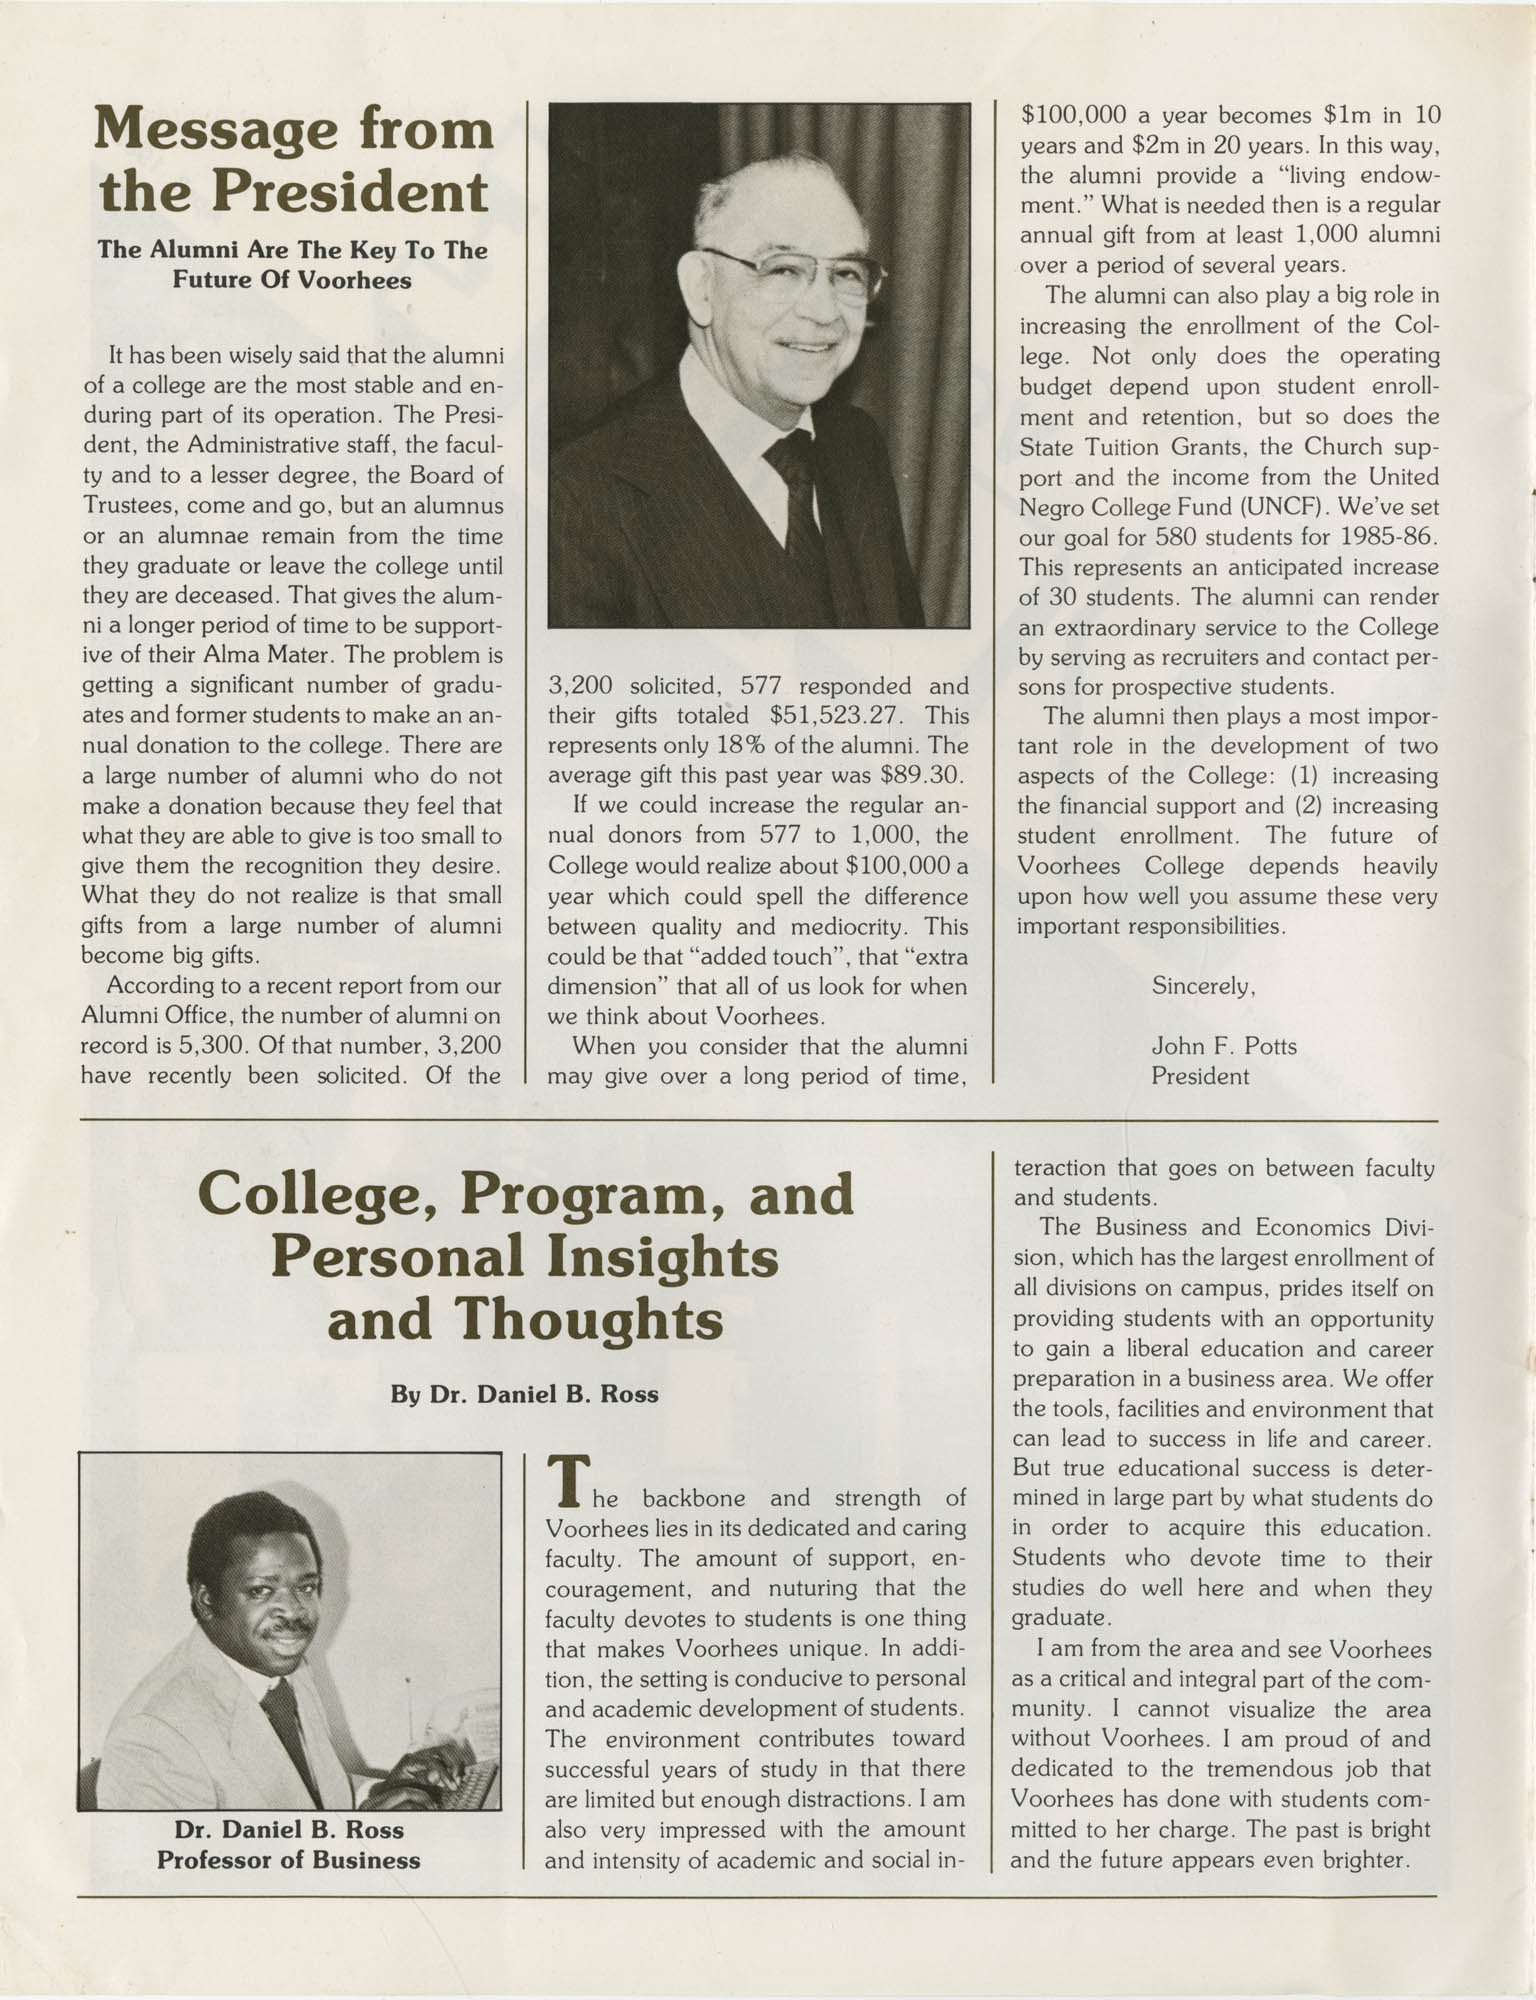 Voorhees Voice, Volume 2, Number 1, April 1985, Front Cover Interior